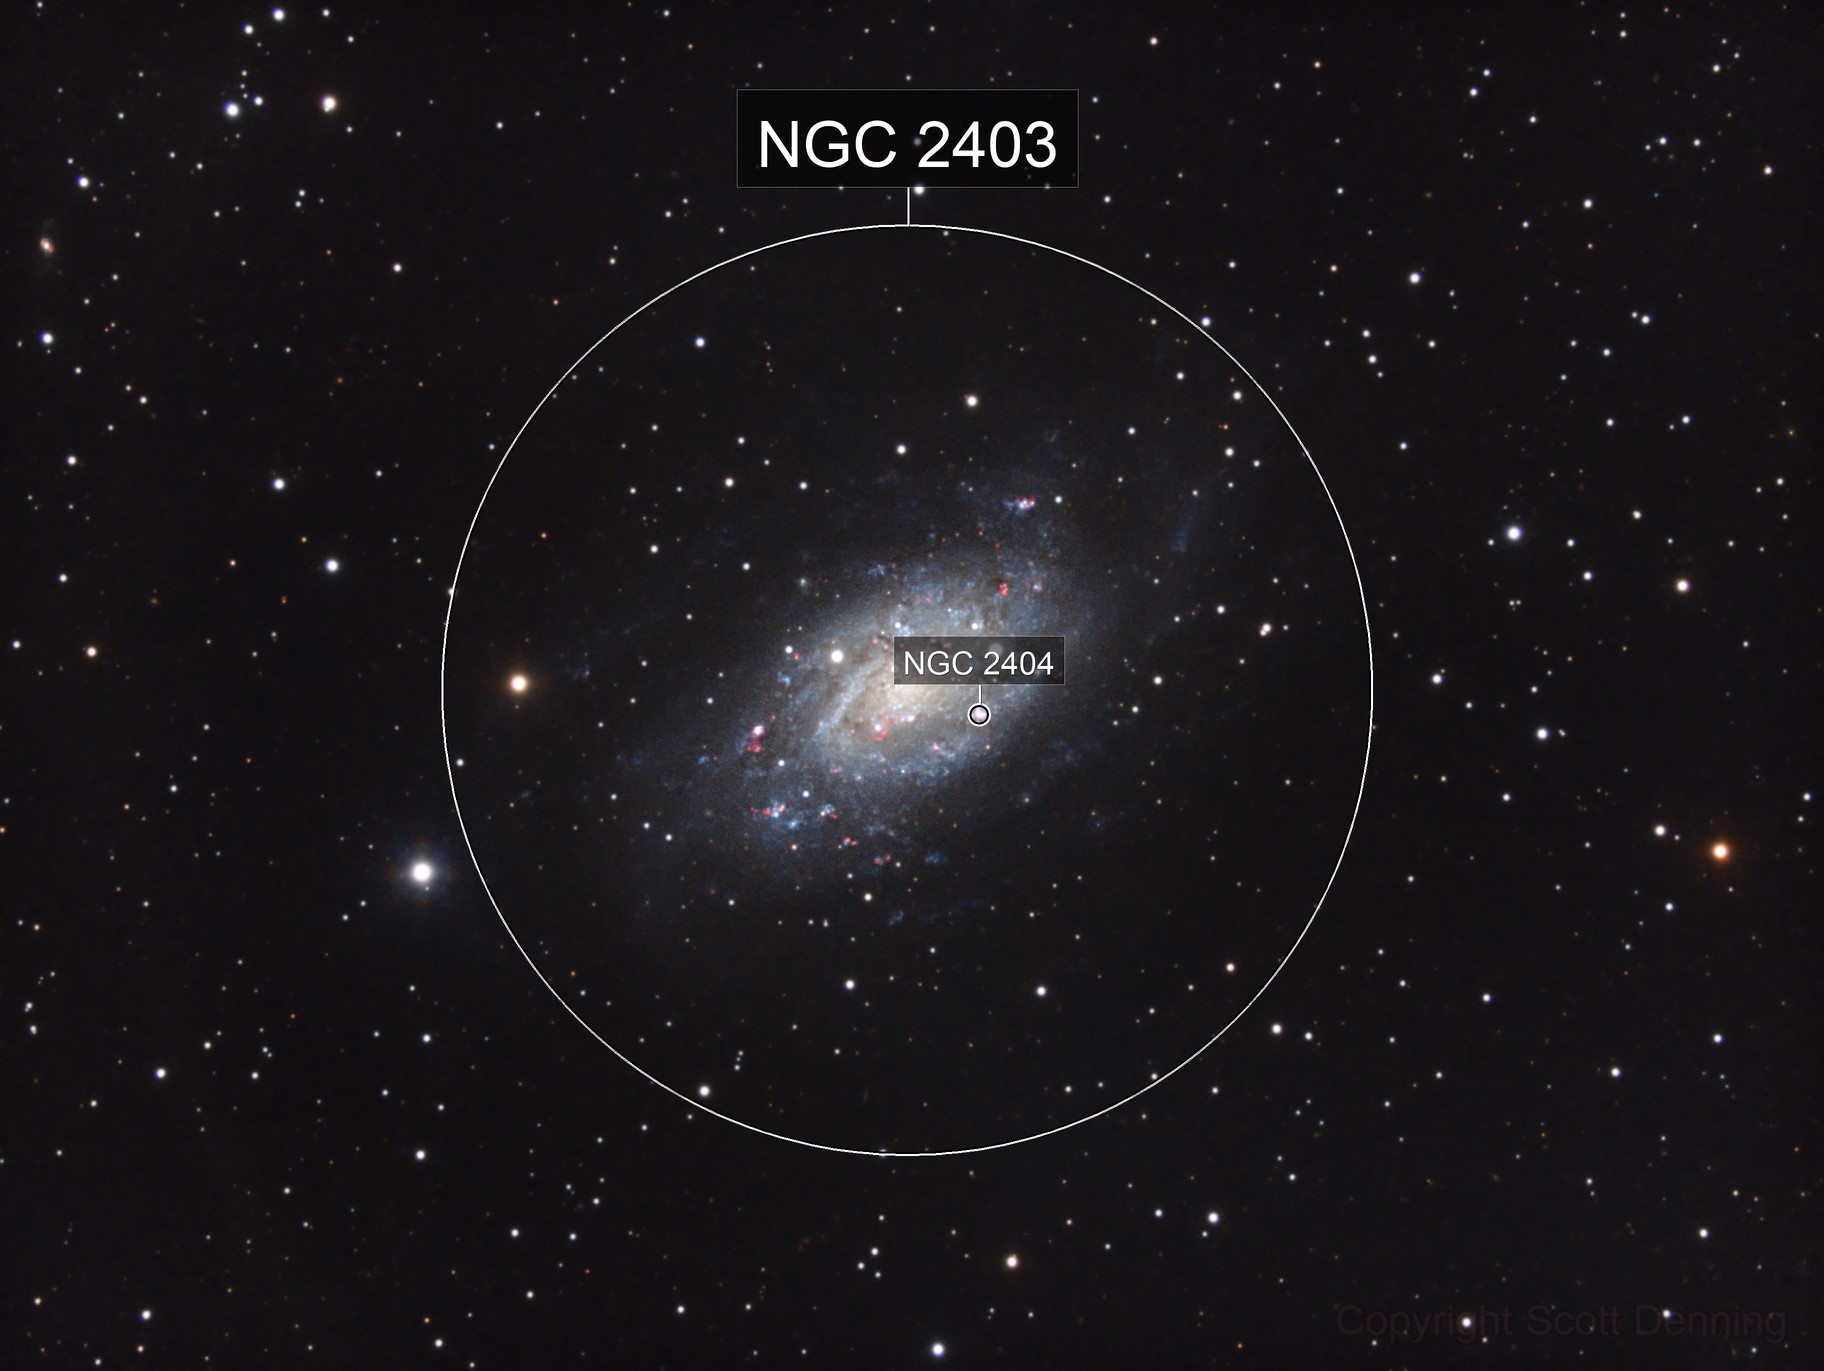 Spiral Galaxy in M81 Group (NGC 2403)